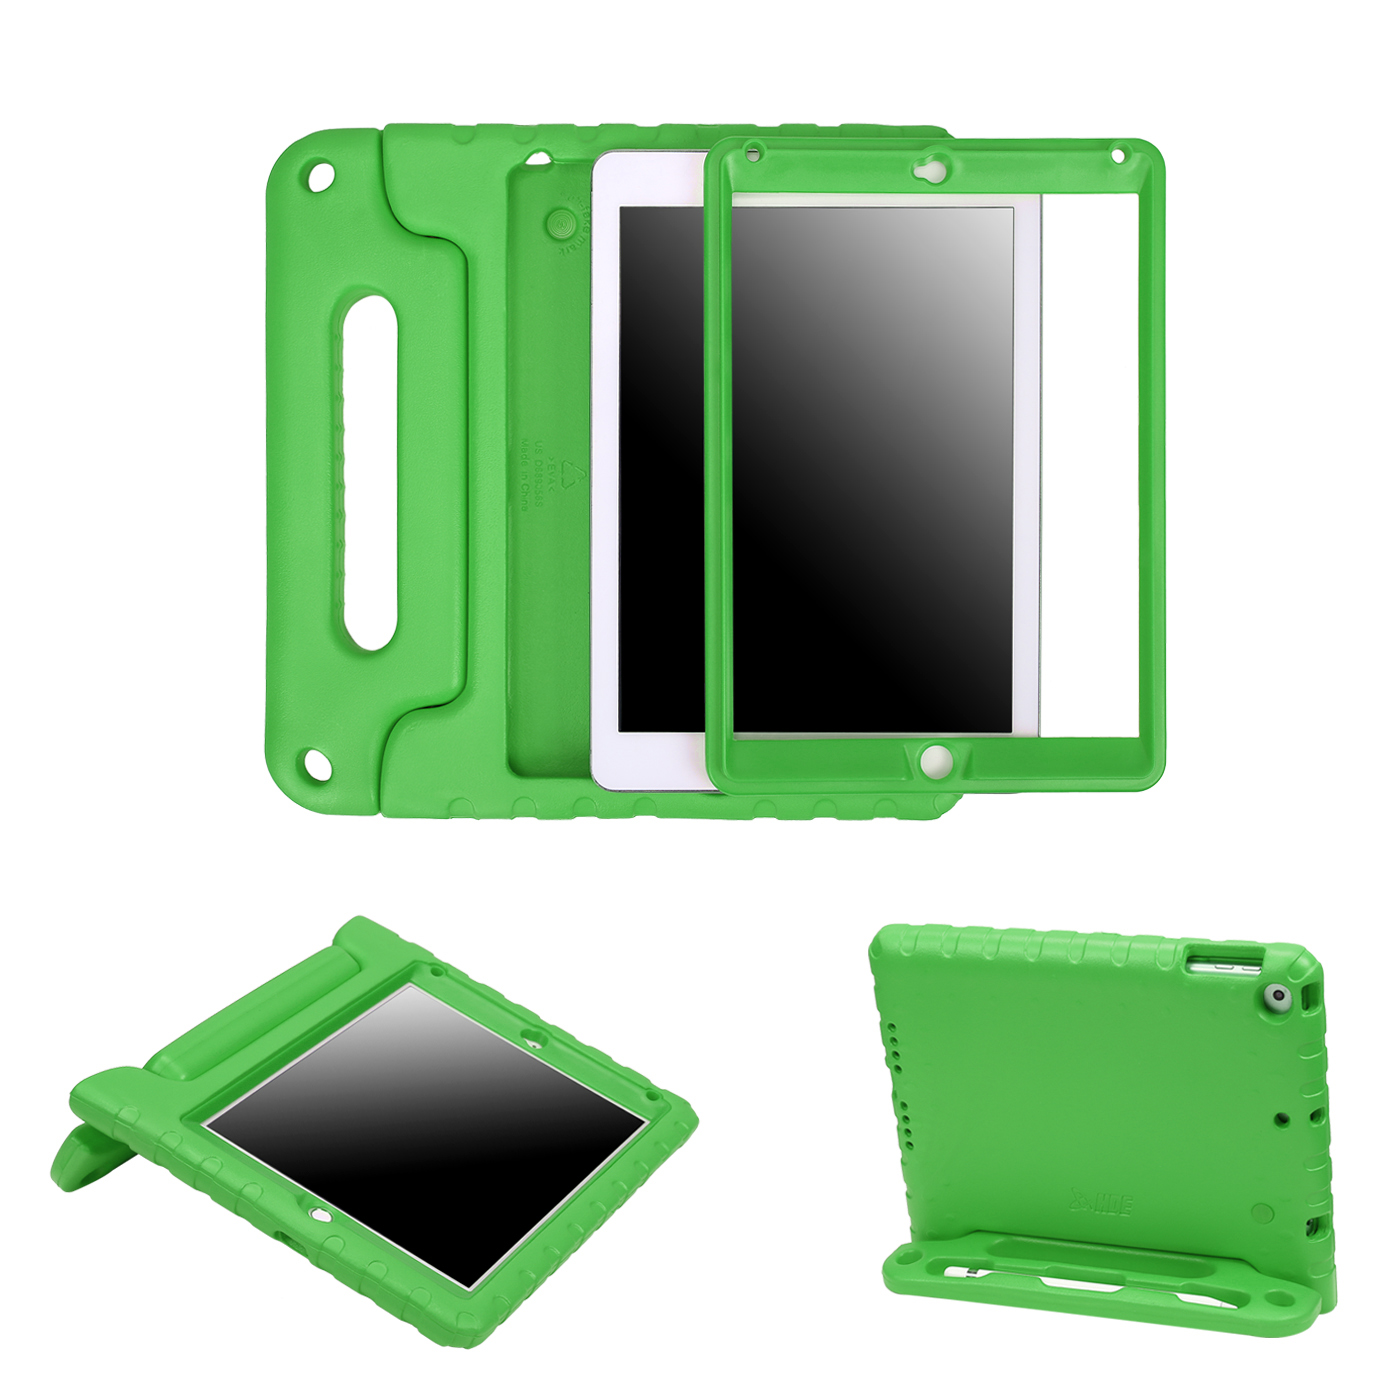 HDE iPad 9.7 Shock Proof Case for Kids - 2018 6th Generation iPad Bumper Cover with Built In Screen Protector and Apple Pencil Holder for All New Apple 9.7 Inch Education Tablet - Green